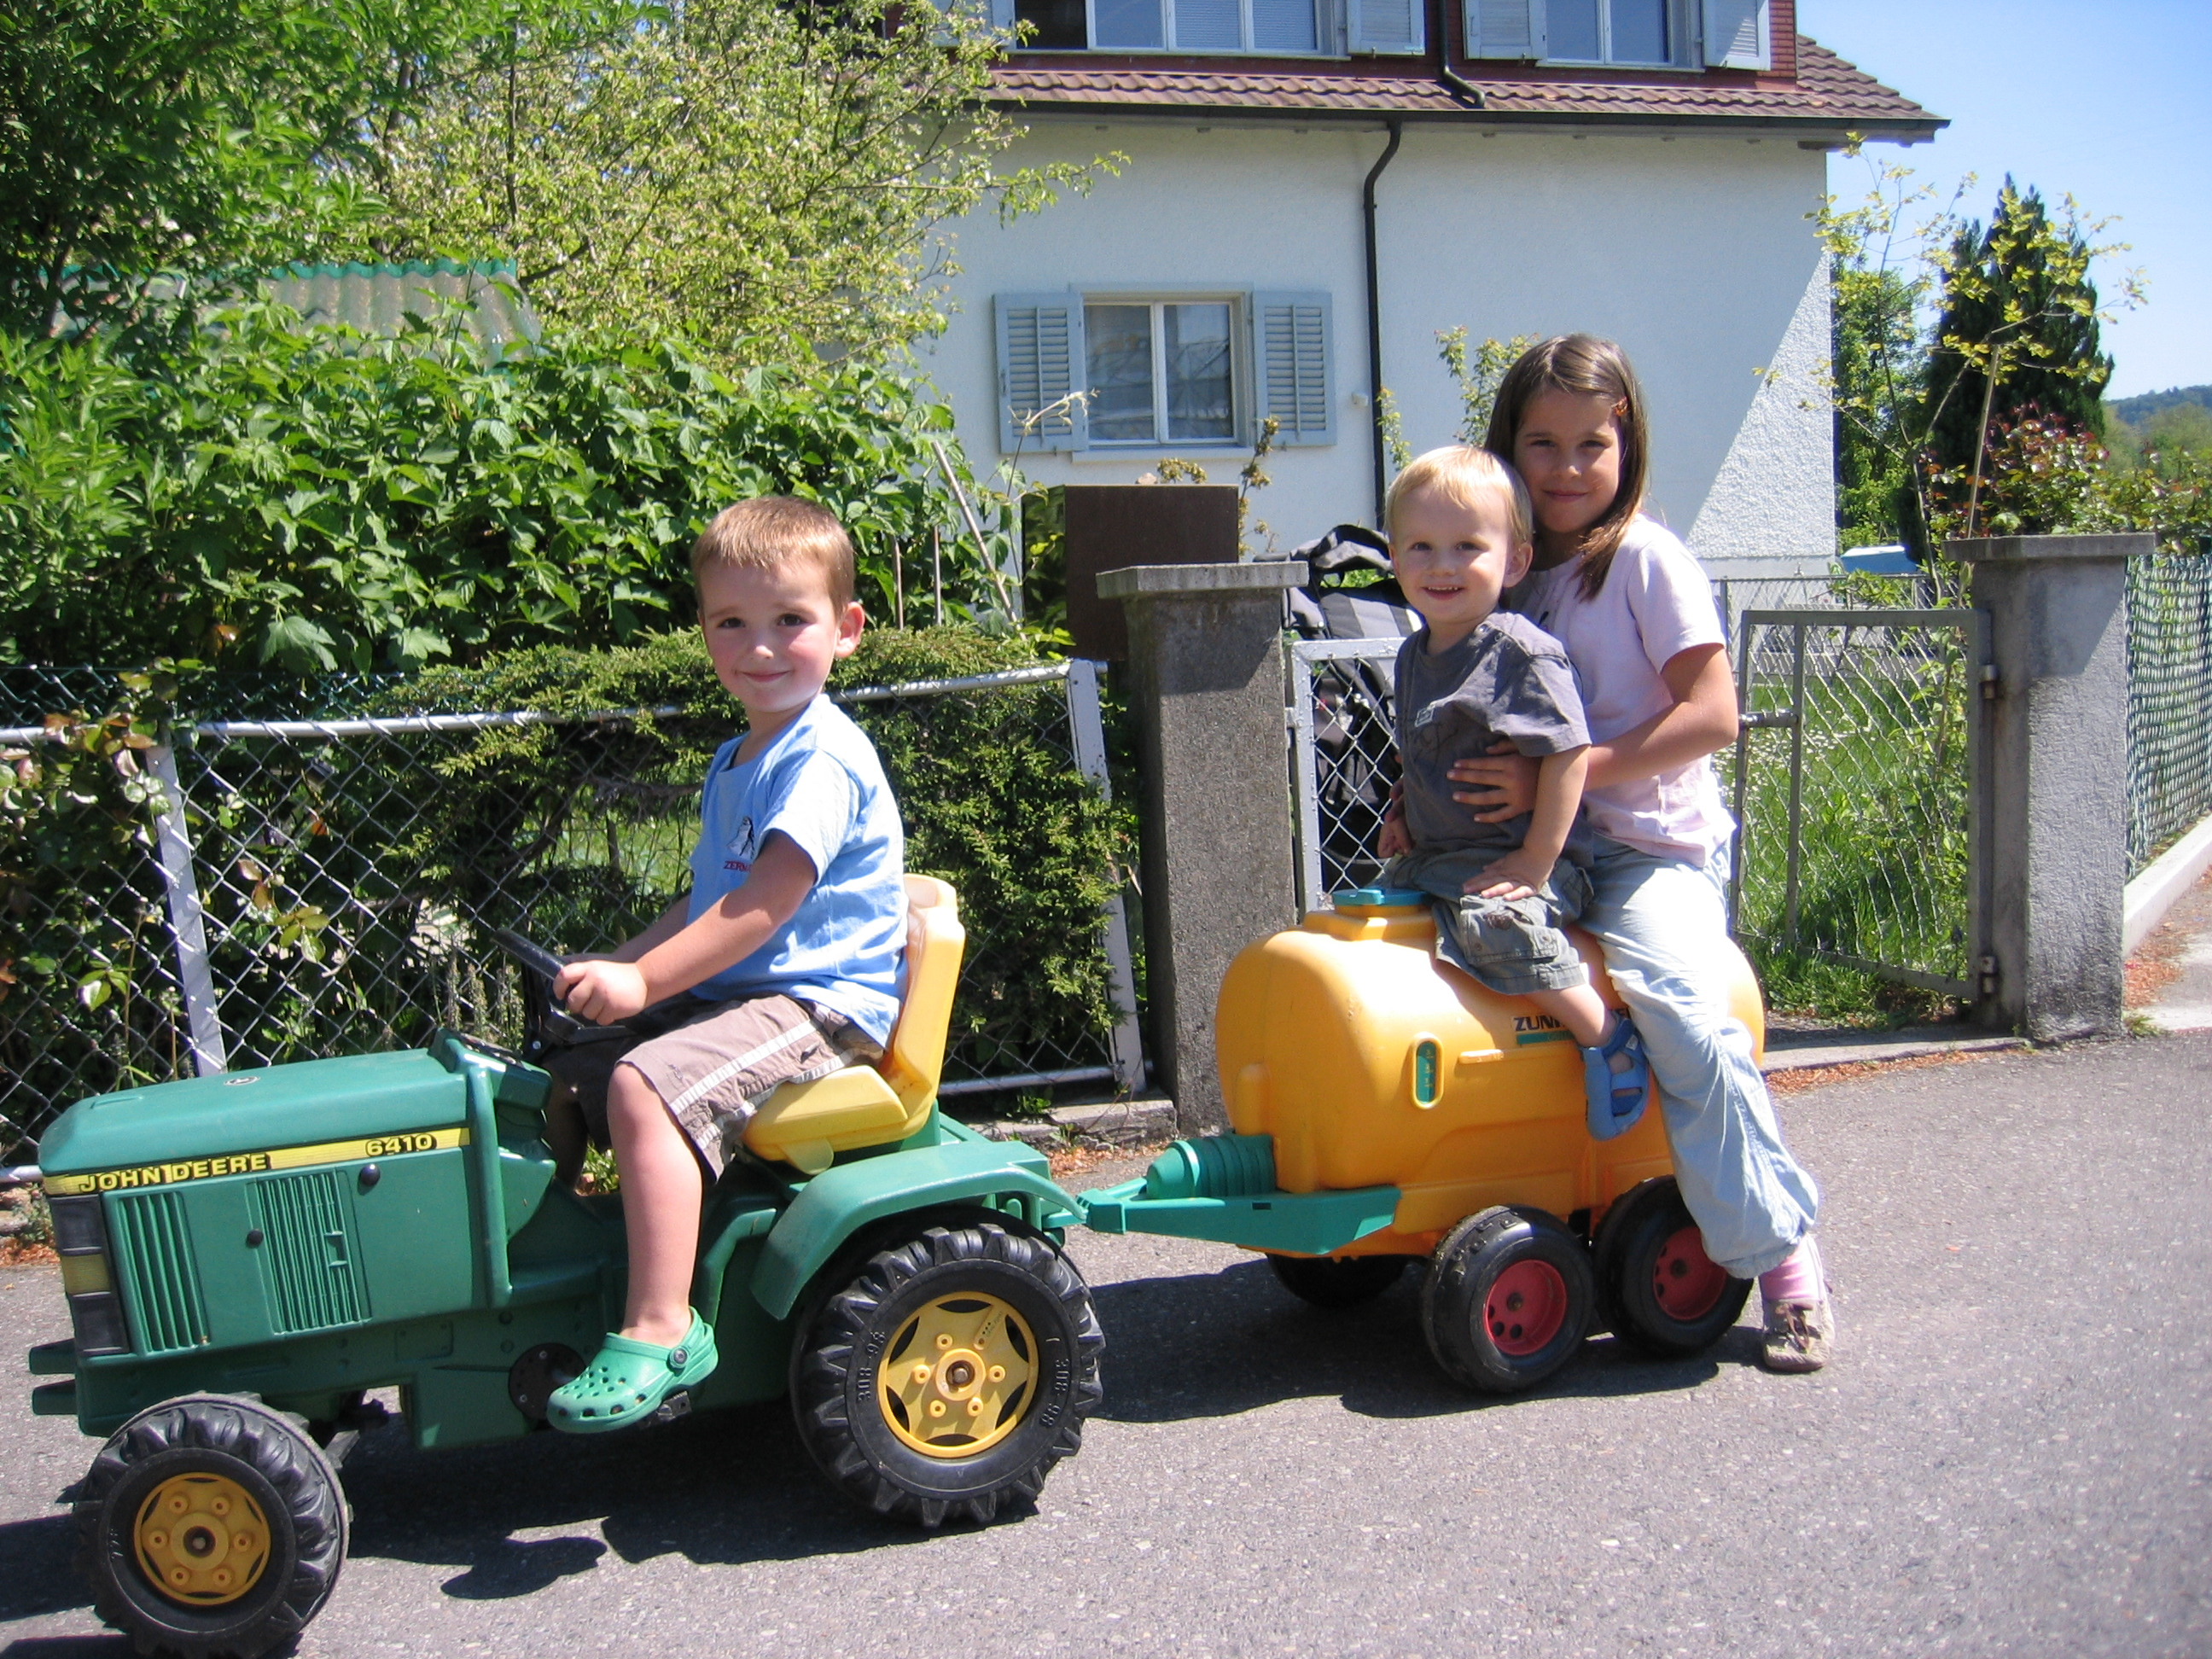 Toby, Noah and Julia on a tractor outside our house in Oberentfelden